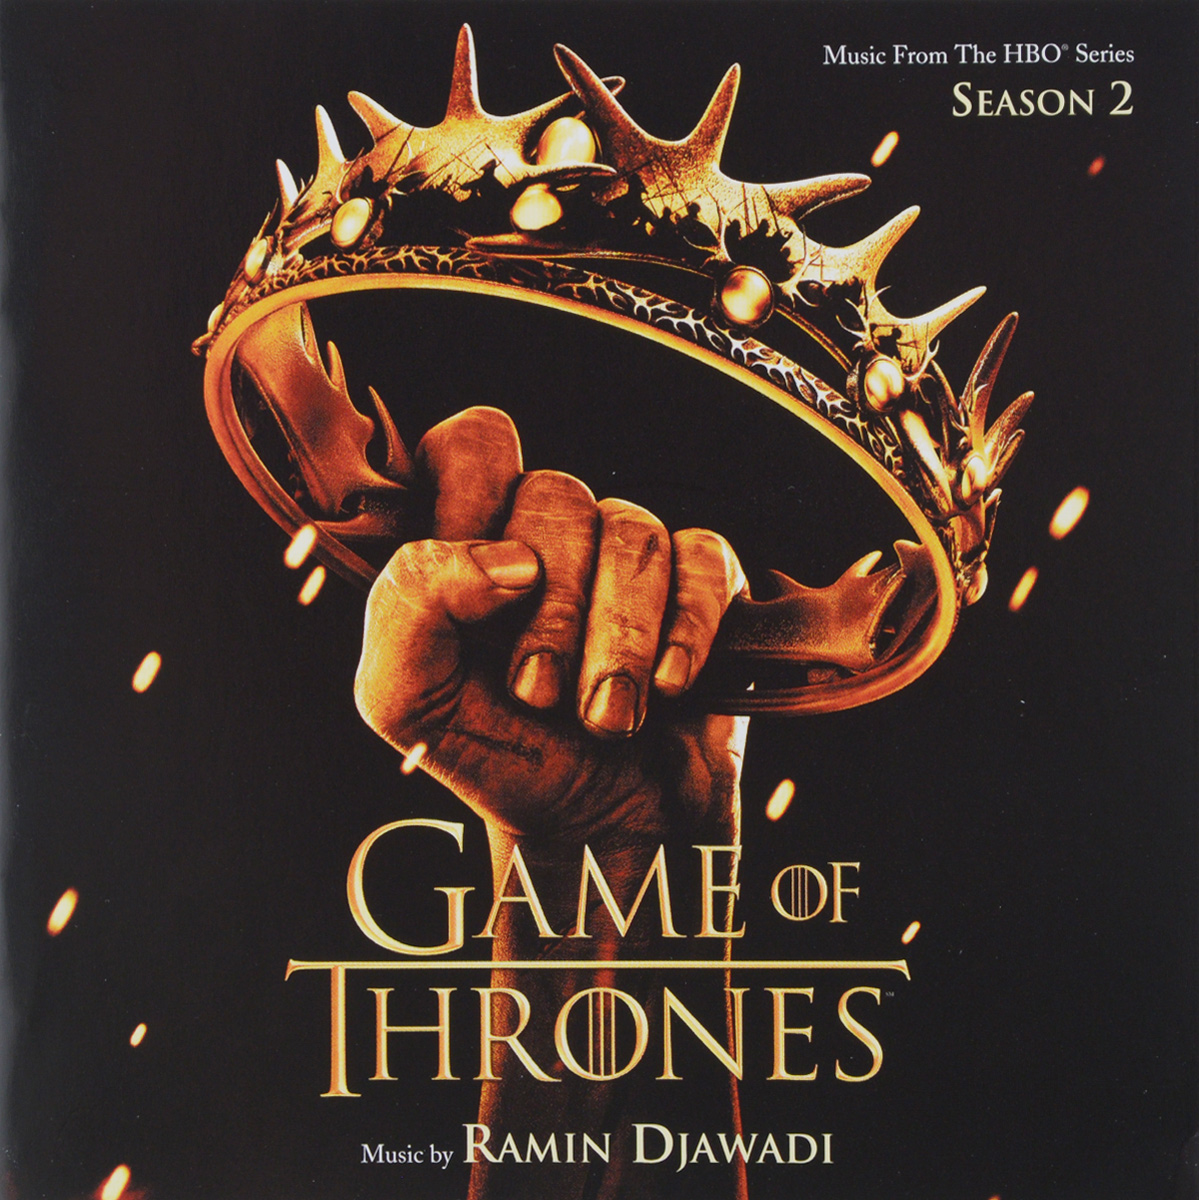 Ramin Djawadi. Game Of Thrones. Season 2 (Music From The HBO Series) antique carved wood star wars game of thrones music box hand crank theme music welcome to sell friends cooperation